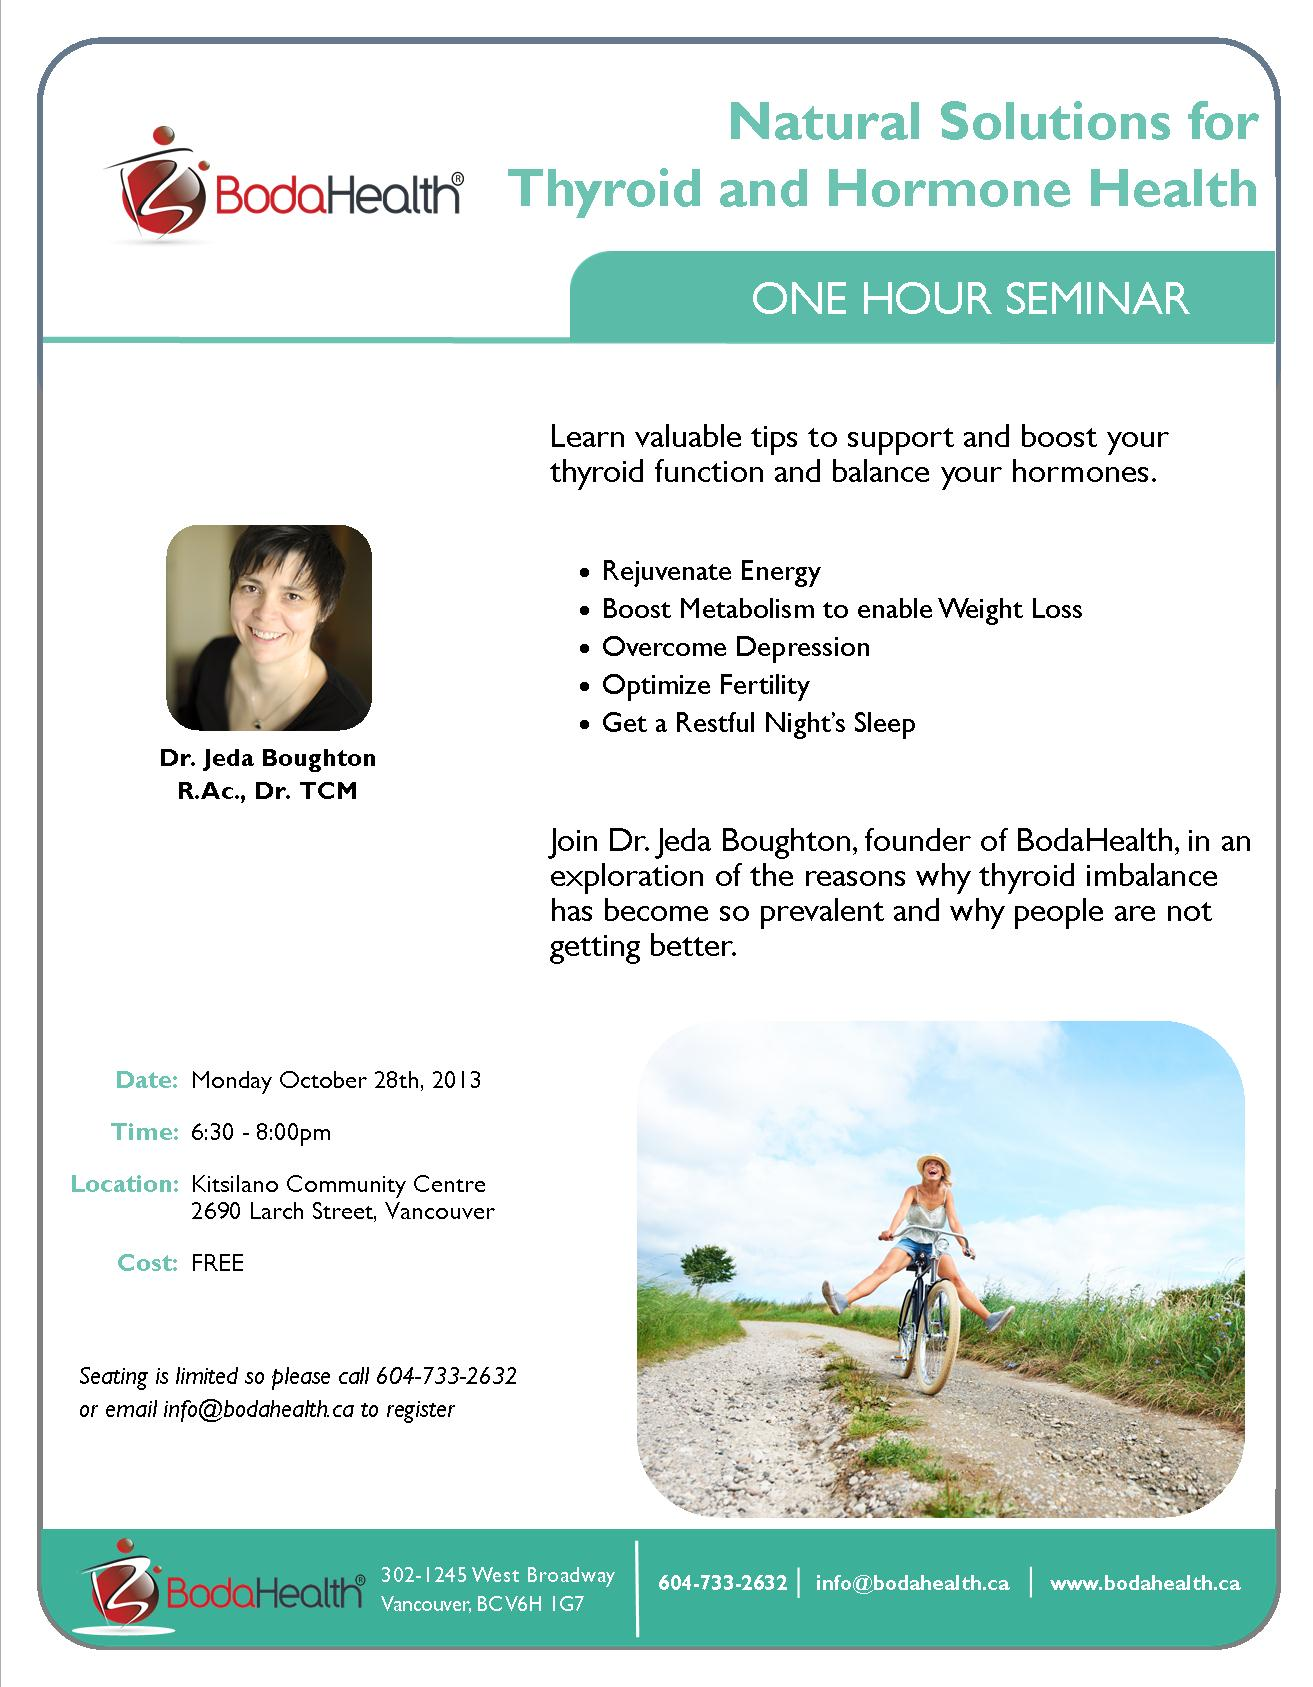 Natural Solutions for Thyroid and Hormone Health - Live Seminar